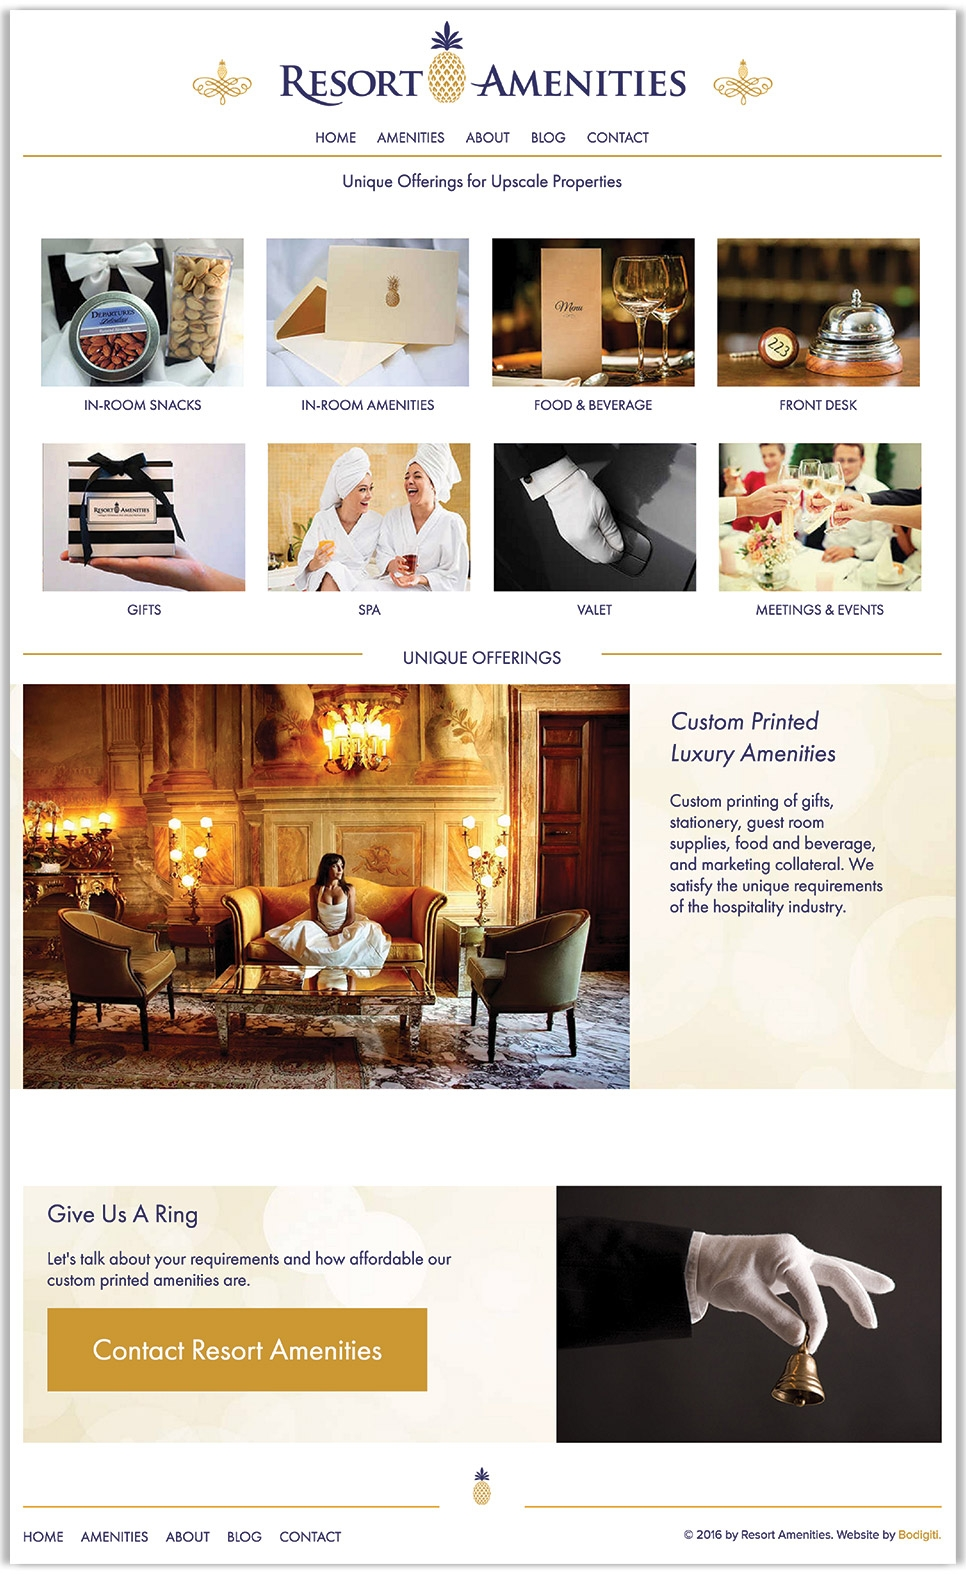 Resort Amenities's full homepage design, a distributor of custom printed luxury hotel amenities